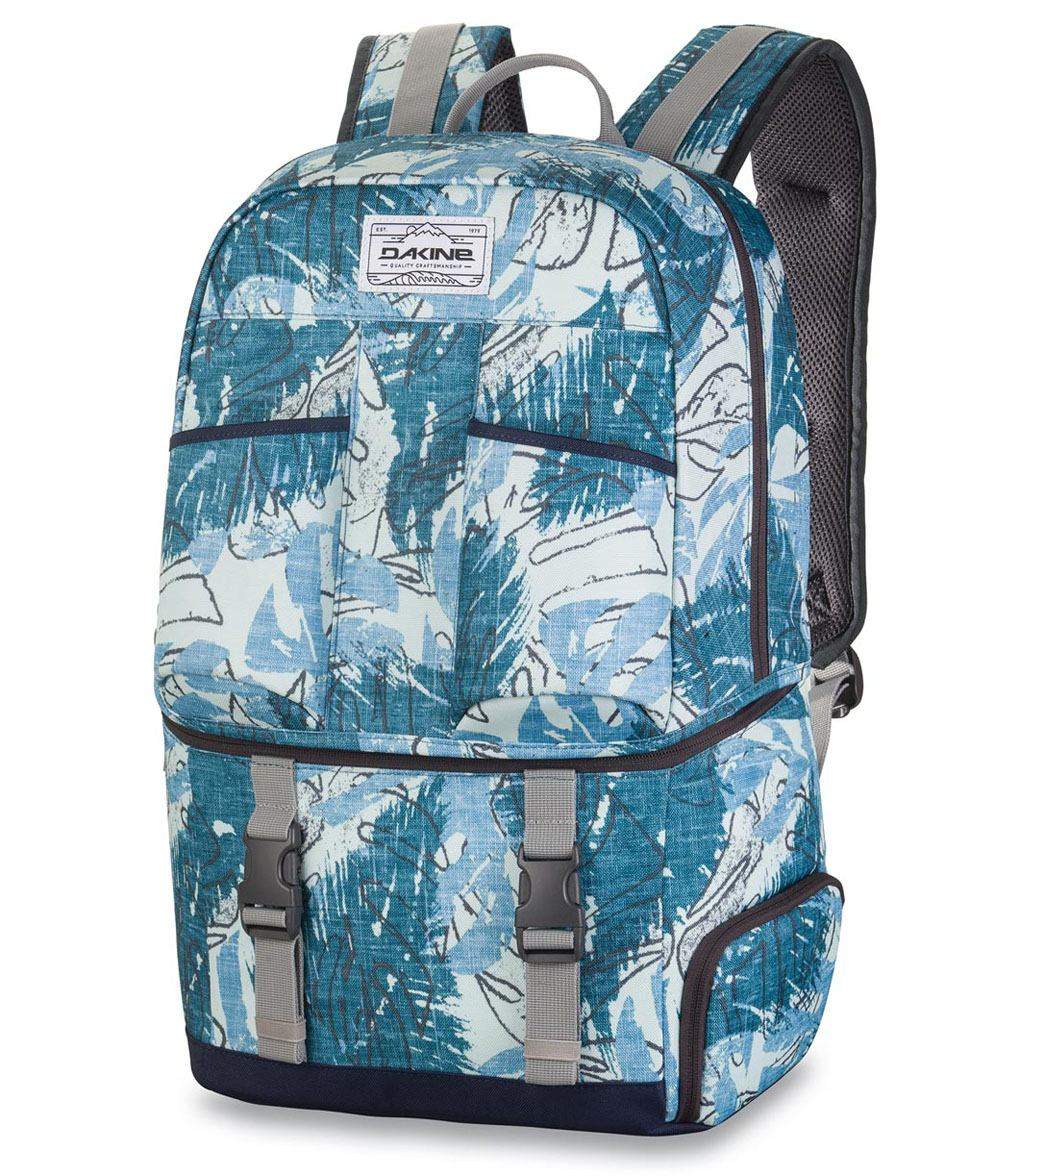 5b3306fea02cf Dakine Party Pack 28l Backpack- Fenix Toulouse Handball